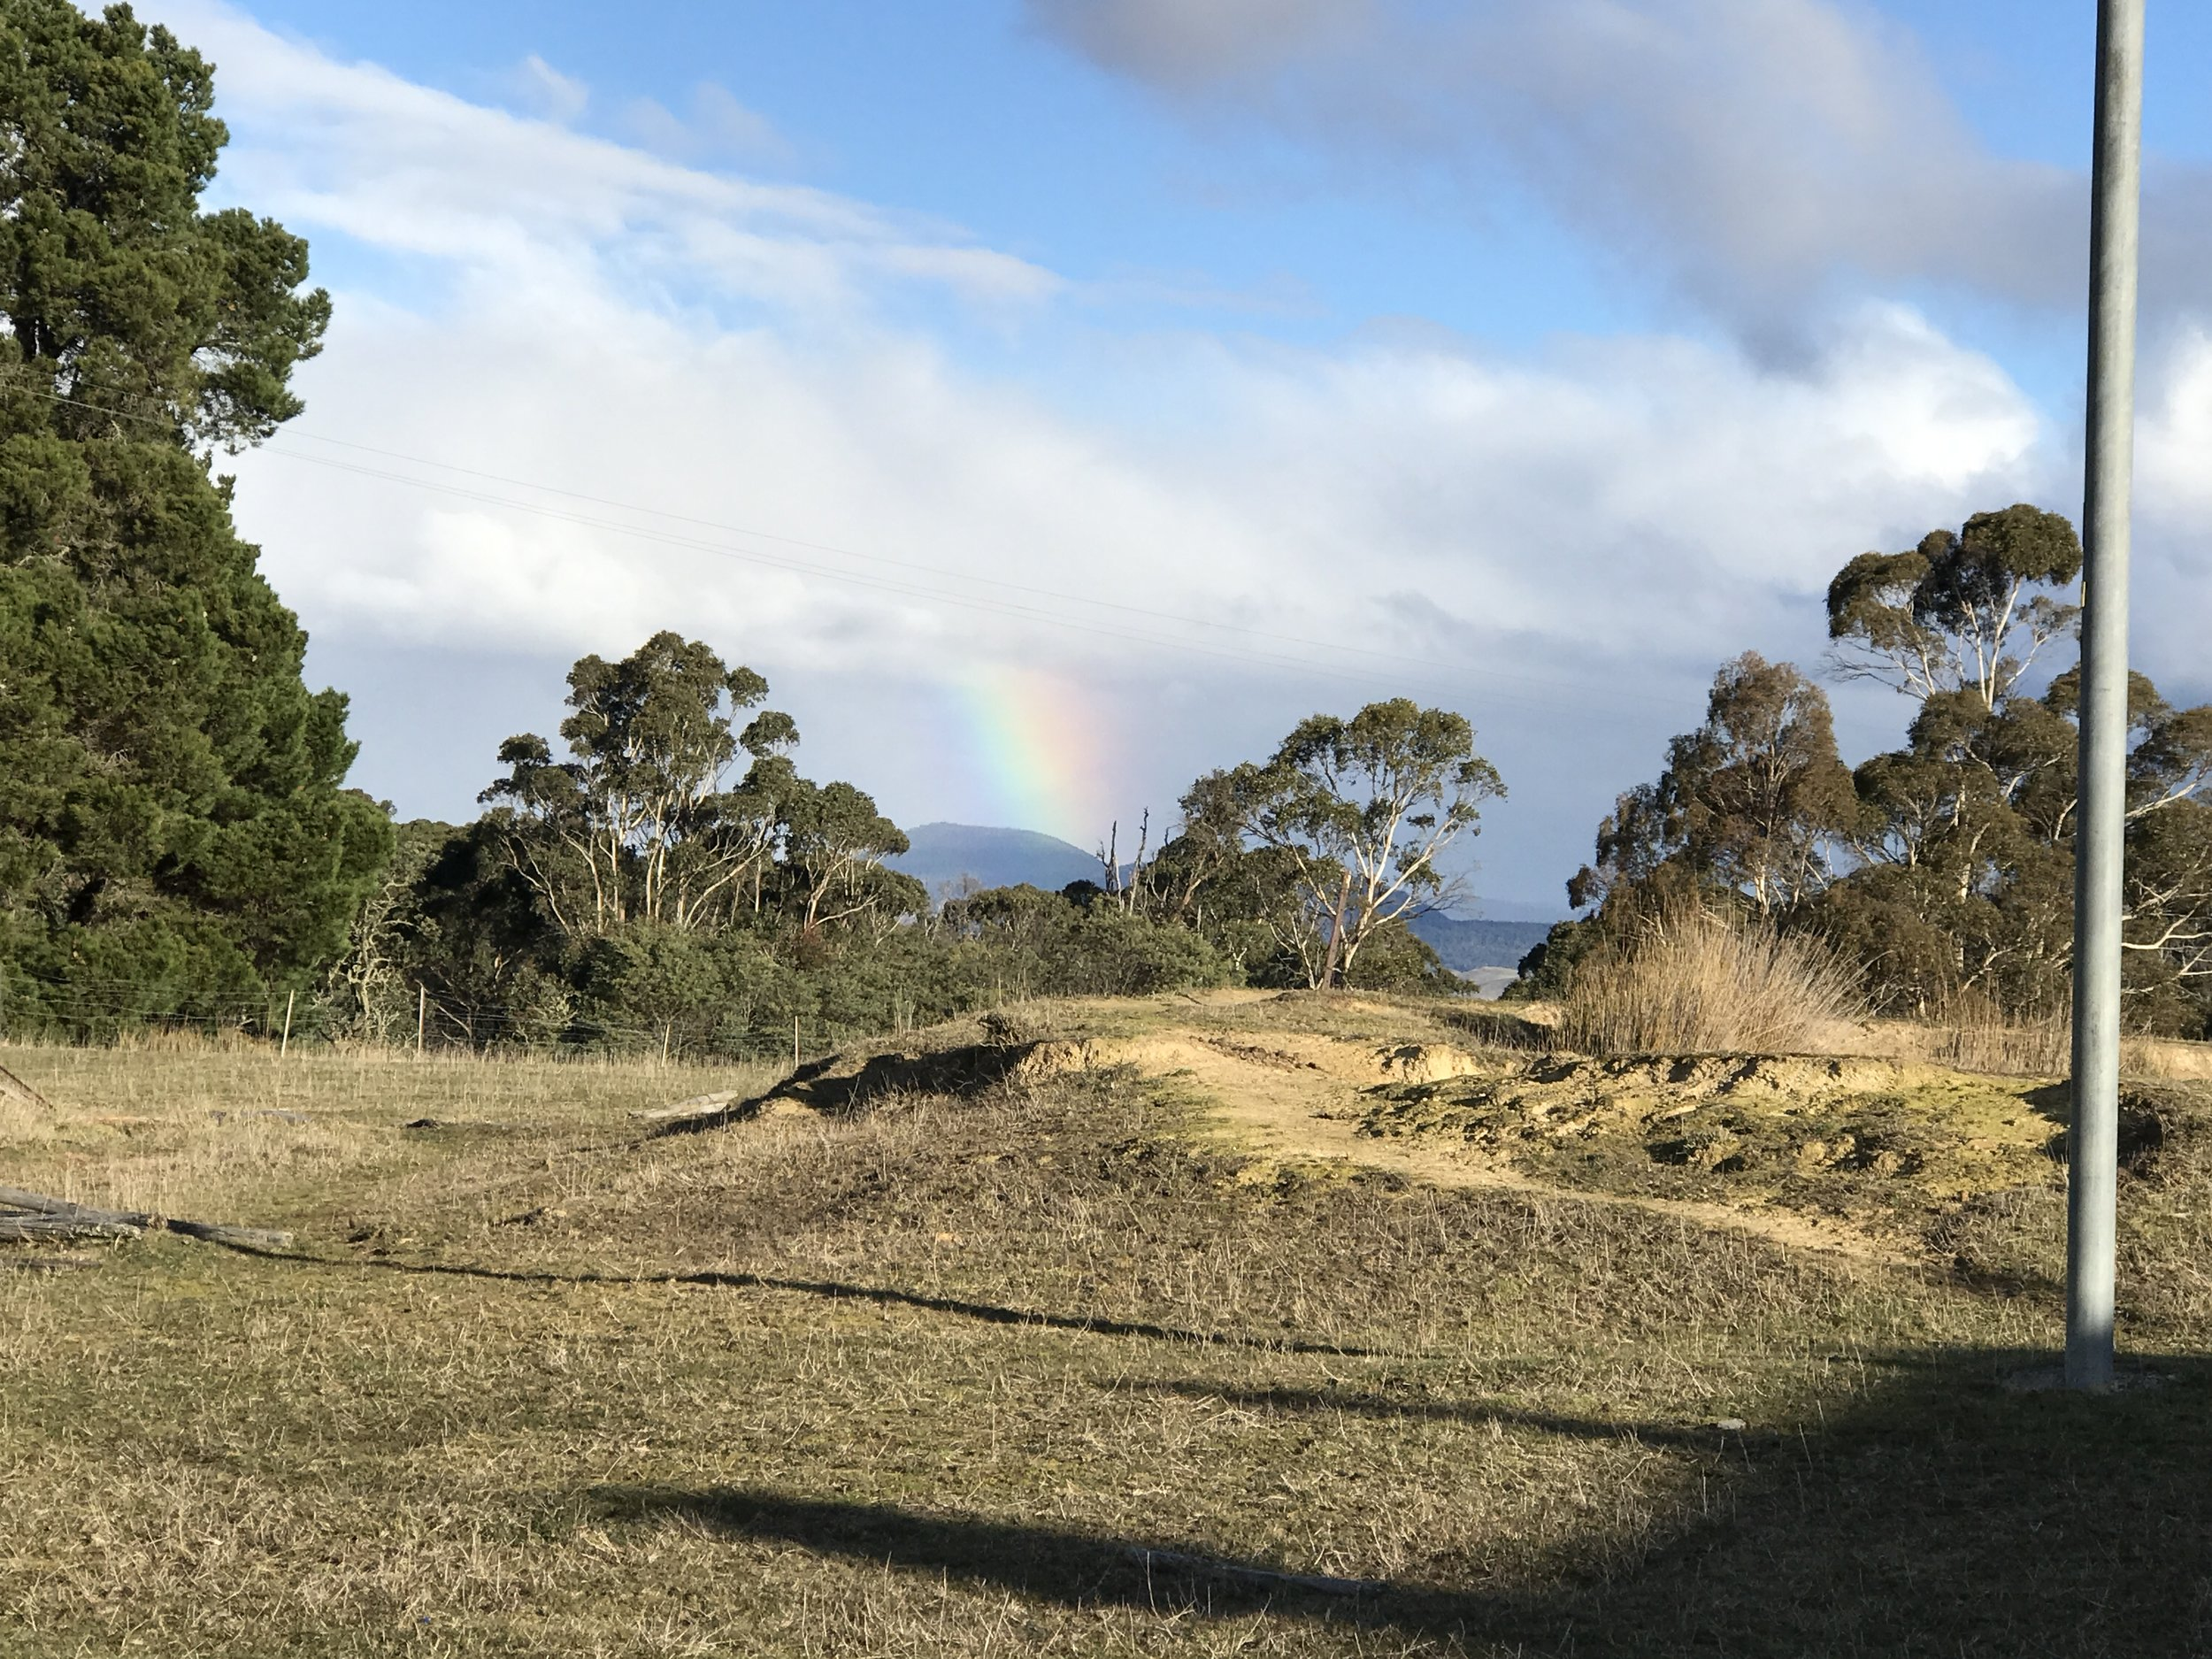 Rainbow seen in Rhyndaston and in Cole River Valley.